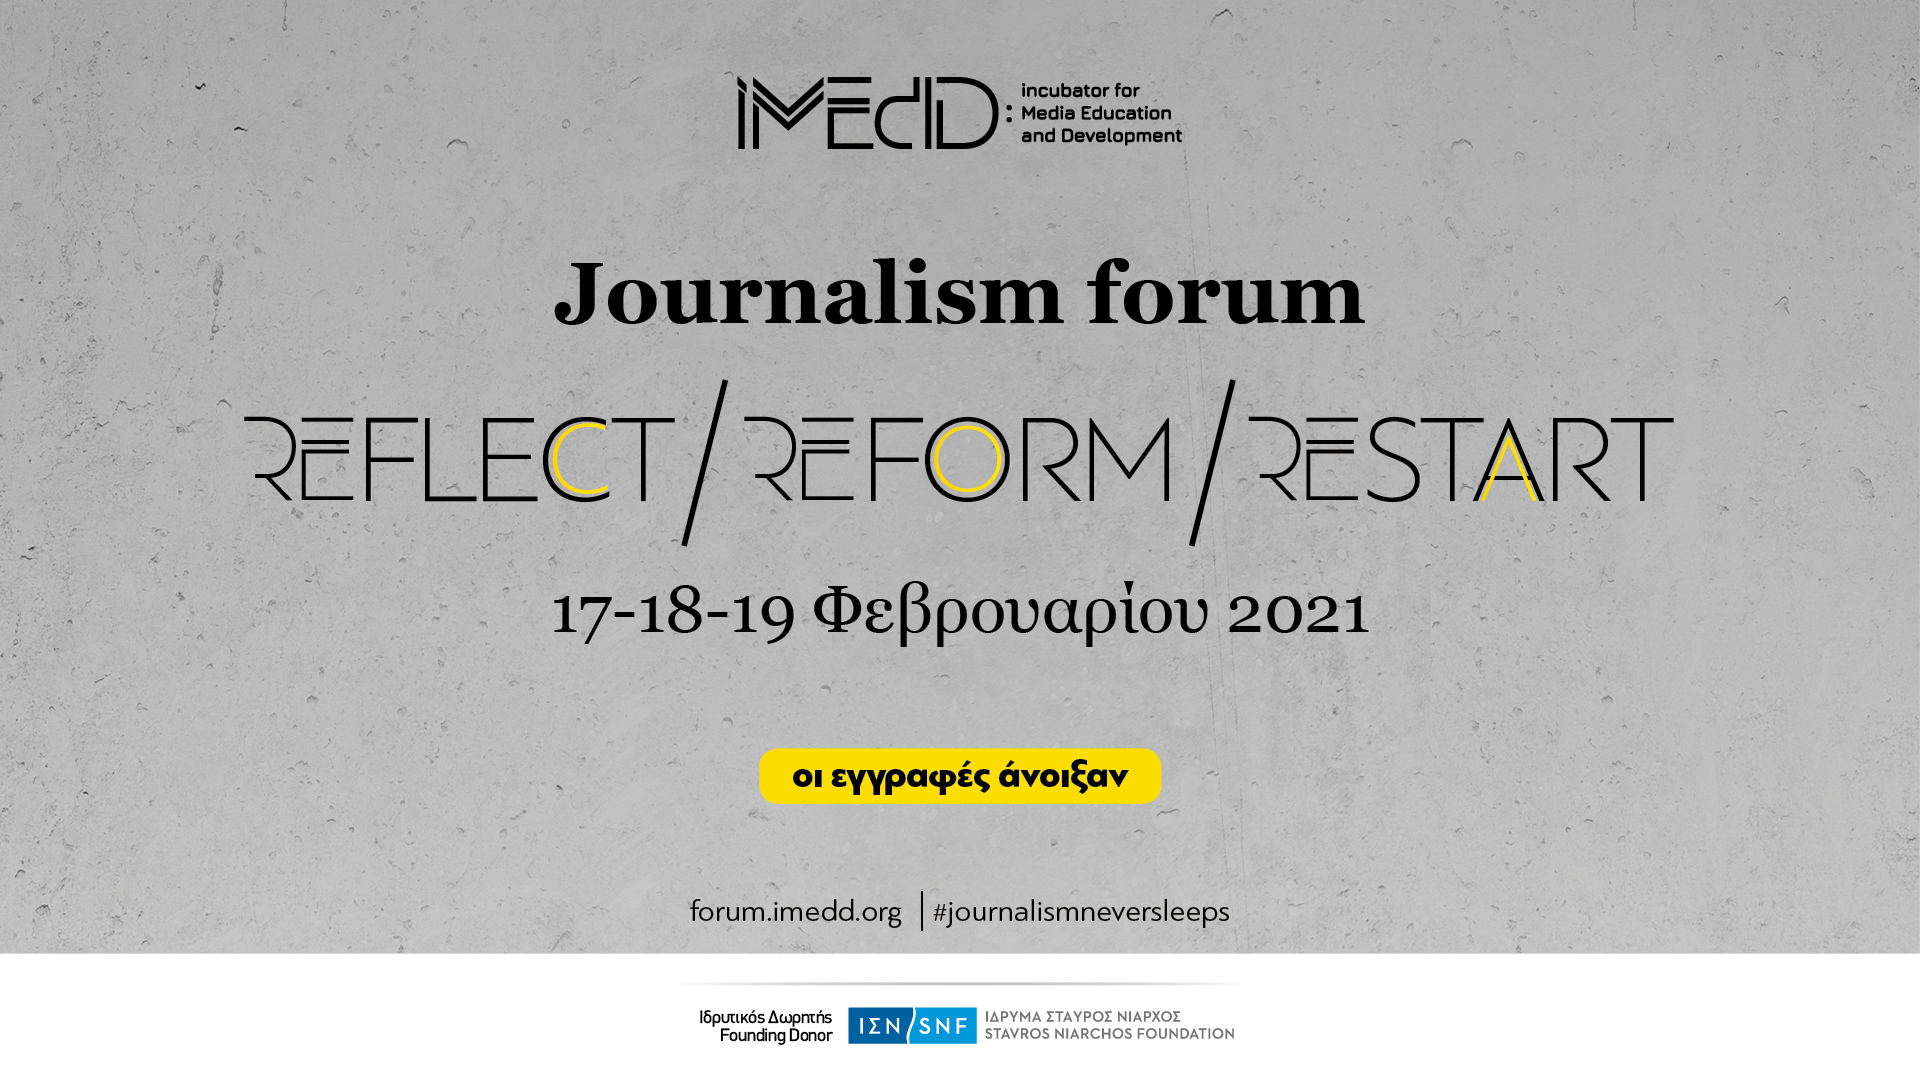 iMEdD Journalism Forum